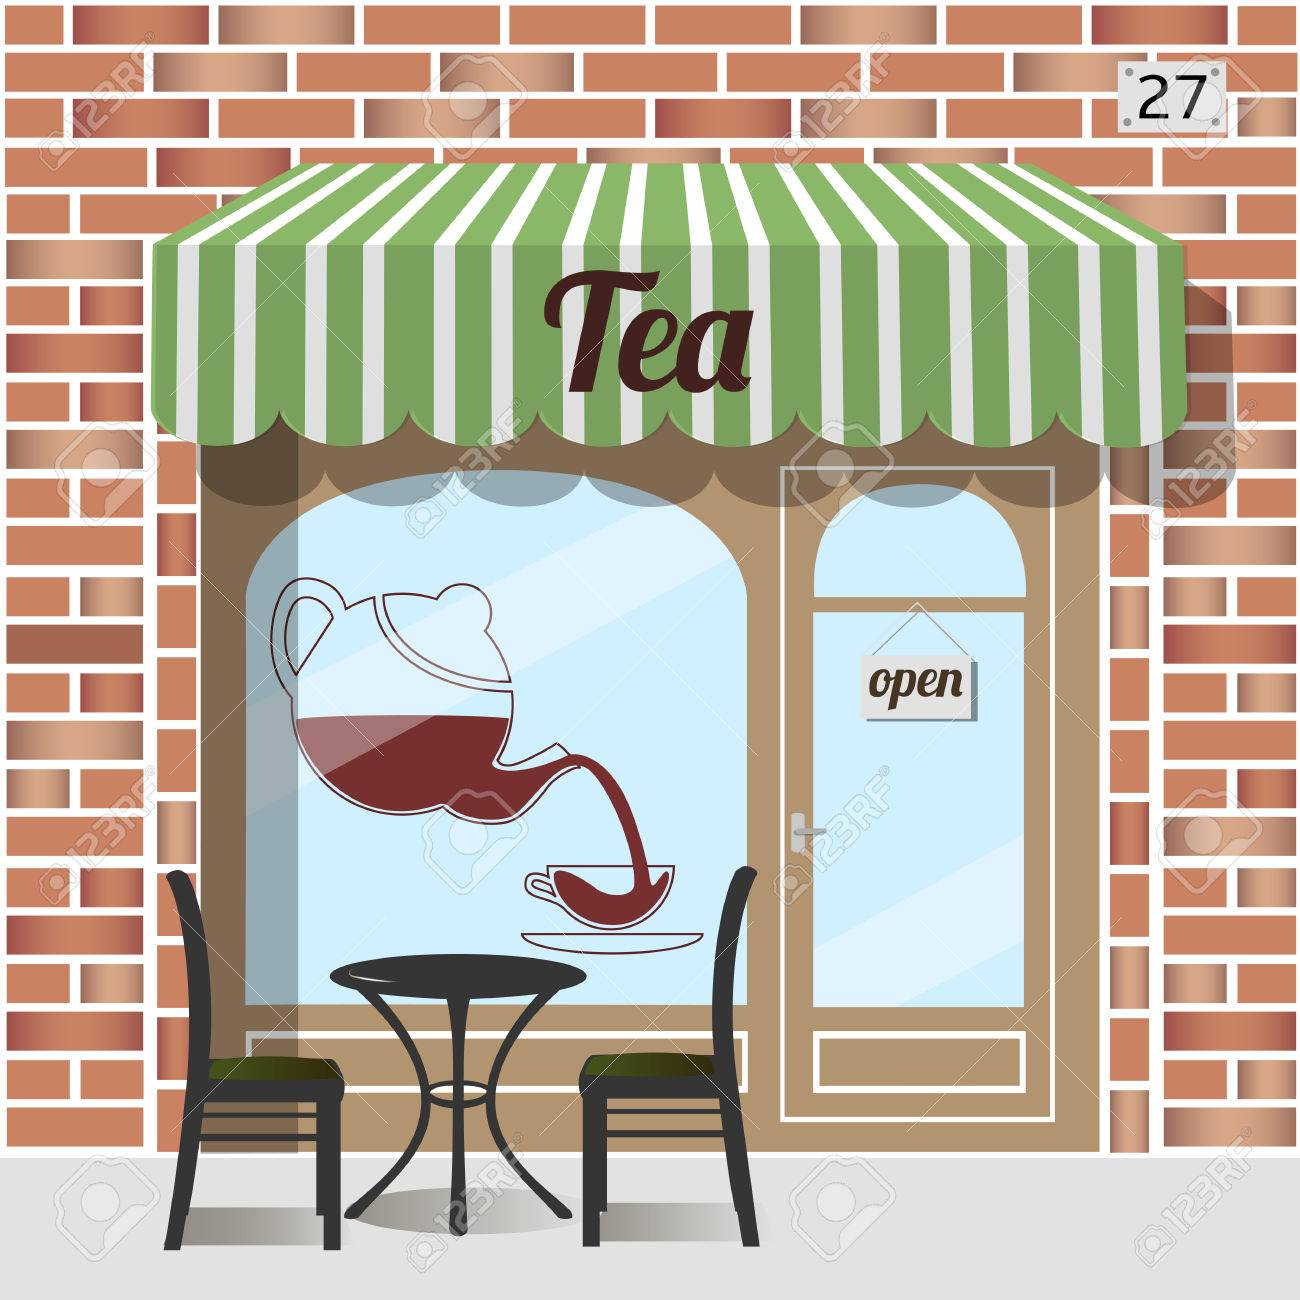 Tea shop building. Facade of brick. Tea sign sticker on window. Table and chairs at the fore. - 57259595